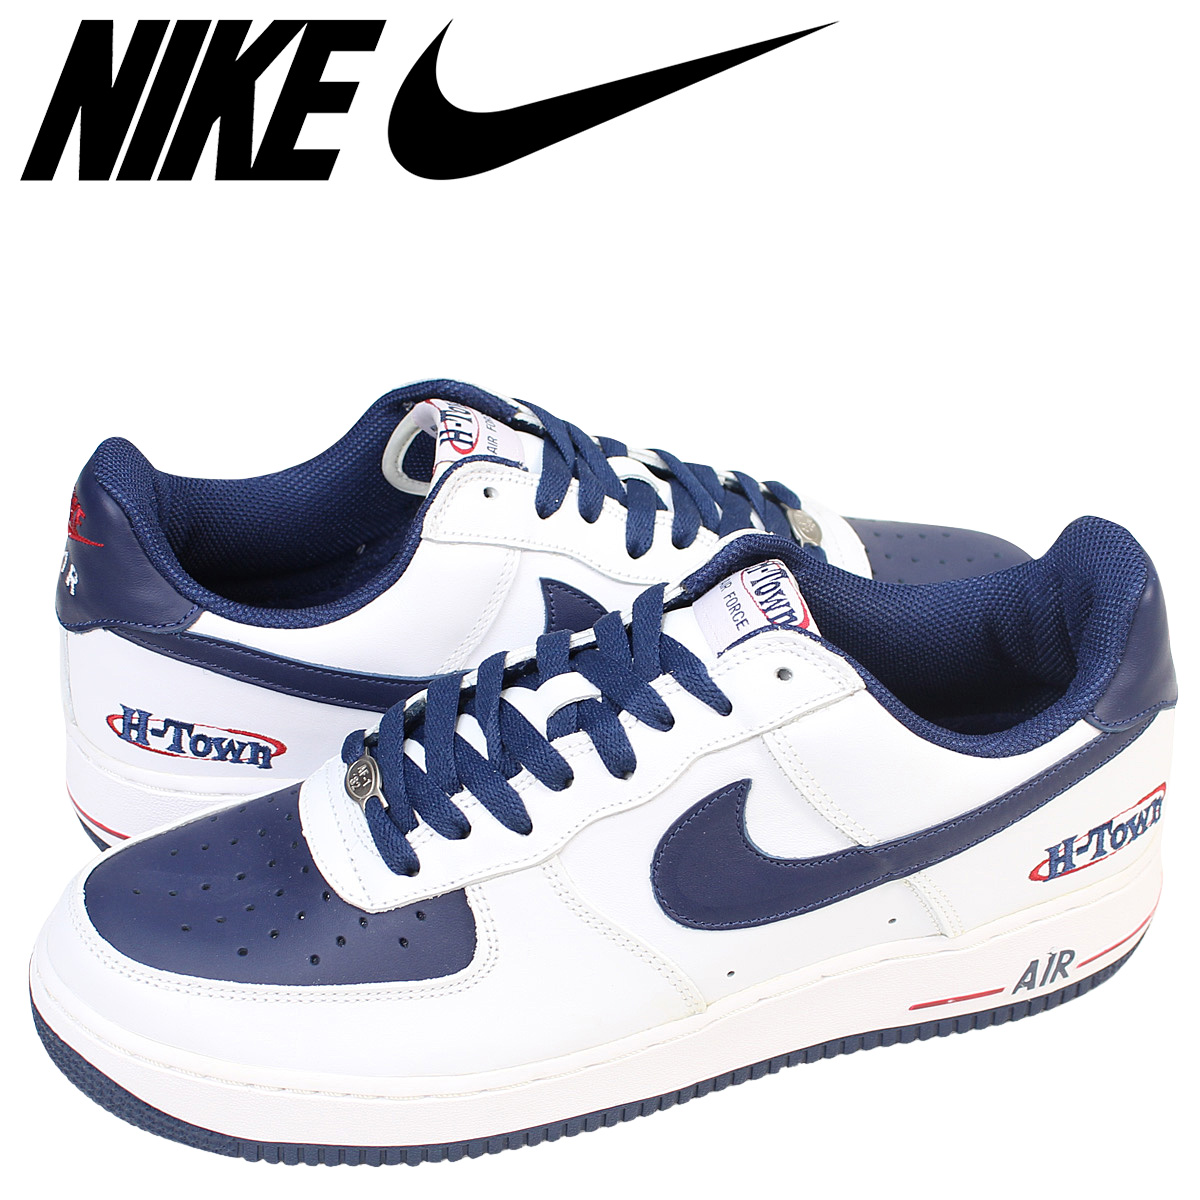 NIKE Nike air force 1 low sneakers AIR FORCE 1 LOW H TOWN men 306,353 144 shoes white white